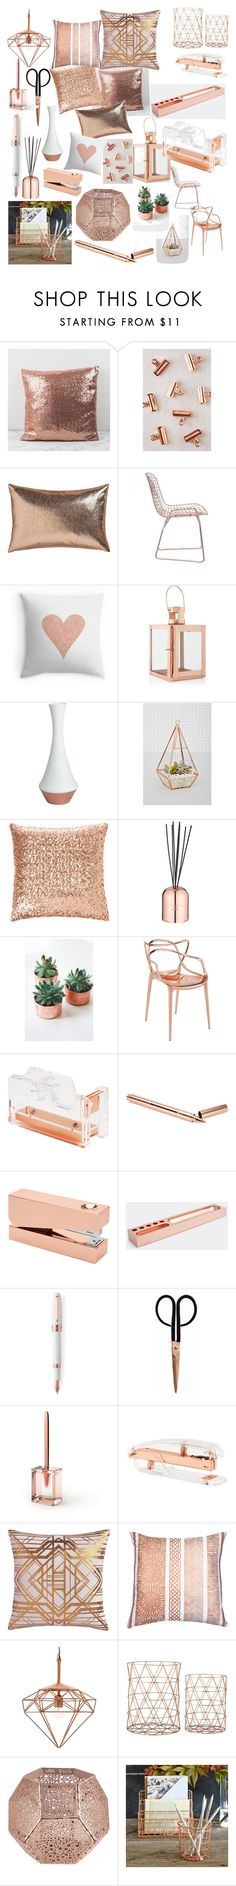 """Copper finishes"" by caitlin1d23-07-10 ❤ liked on Polyvore featuring interior, interiors, interior design, home, home decor, interior decorating, Urban Outfitters, CB2, Zuo and Pillow Decor"